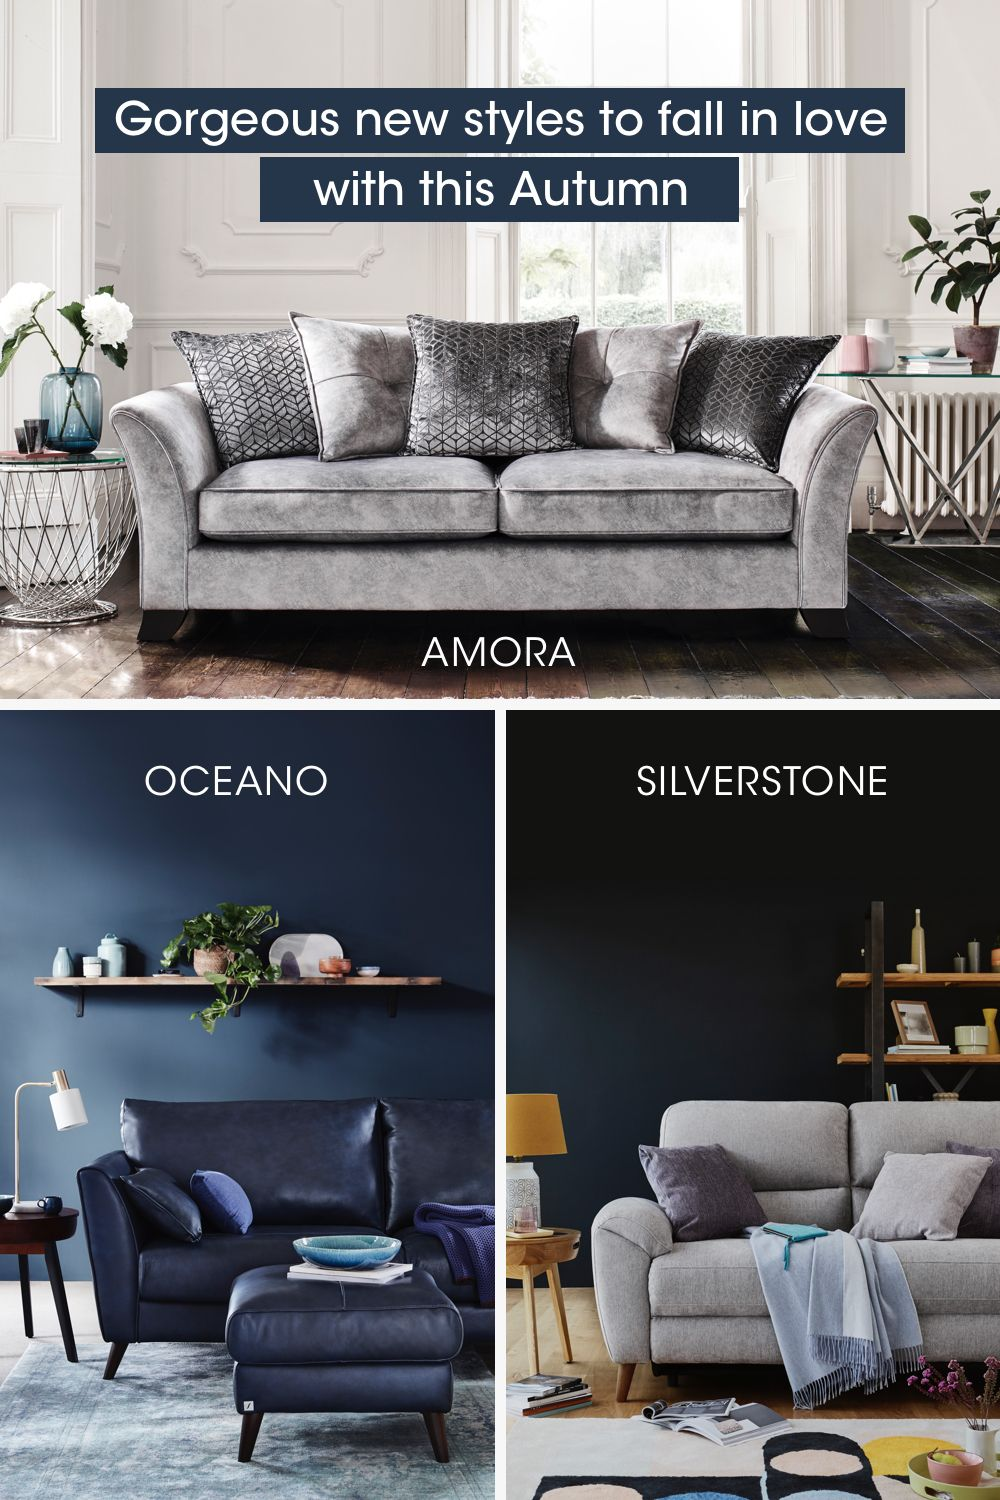 Just Some Of Our Picks For Top Sofas Of The Season With Suggestions On Styling Them To Create Fresh New Looks You Ll Top Sofas Furniture Village Fabulous Sofa